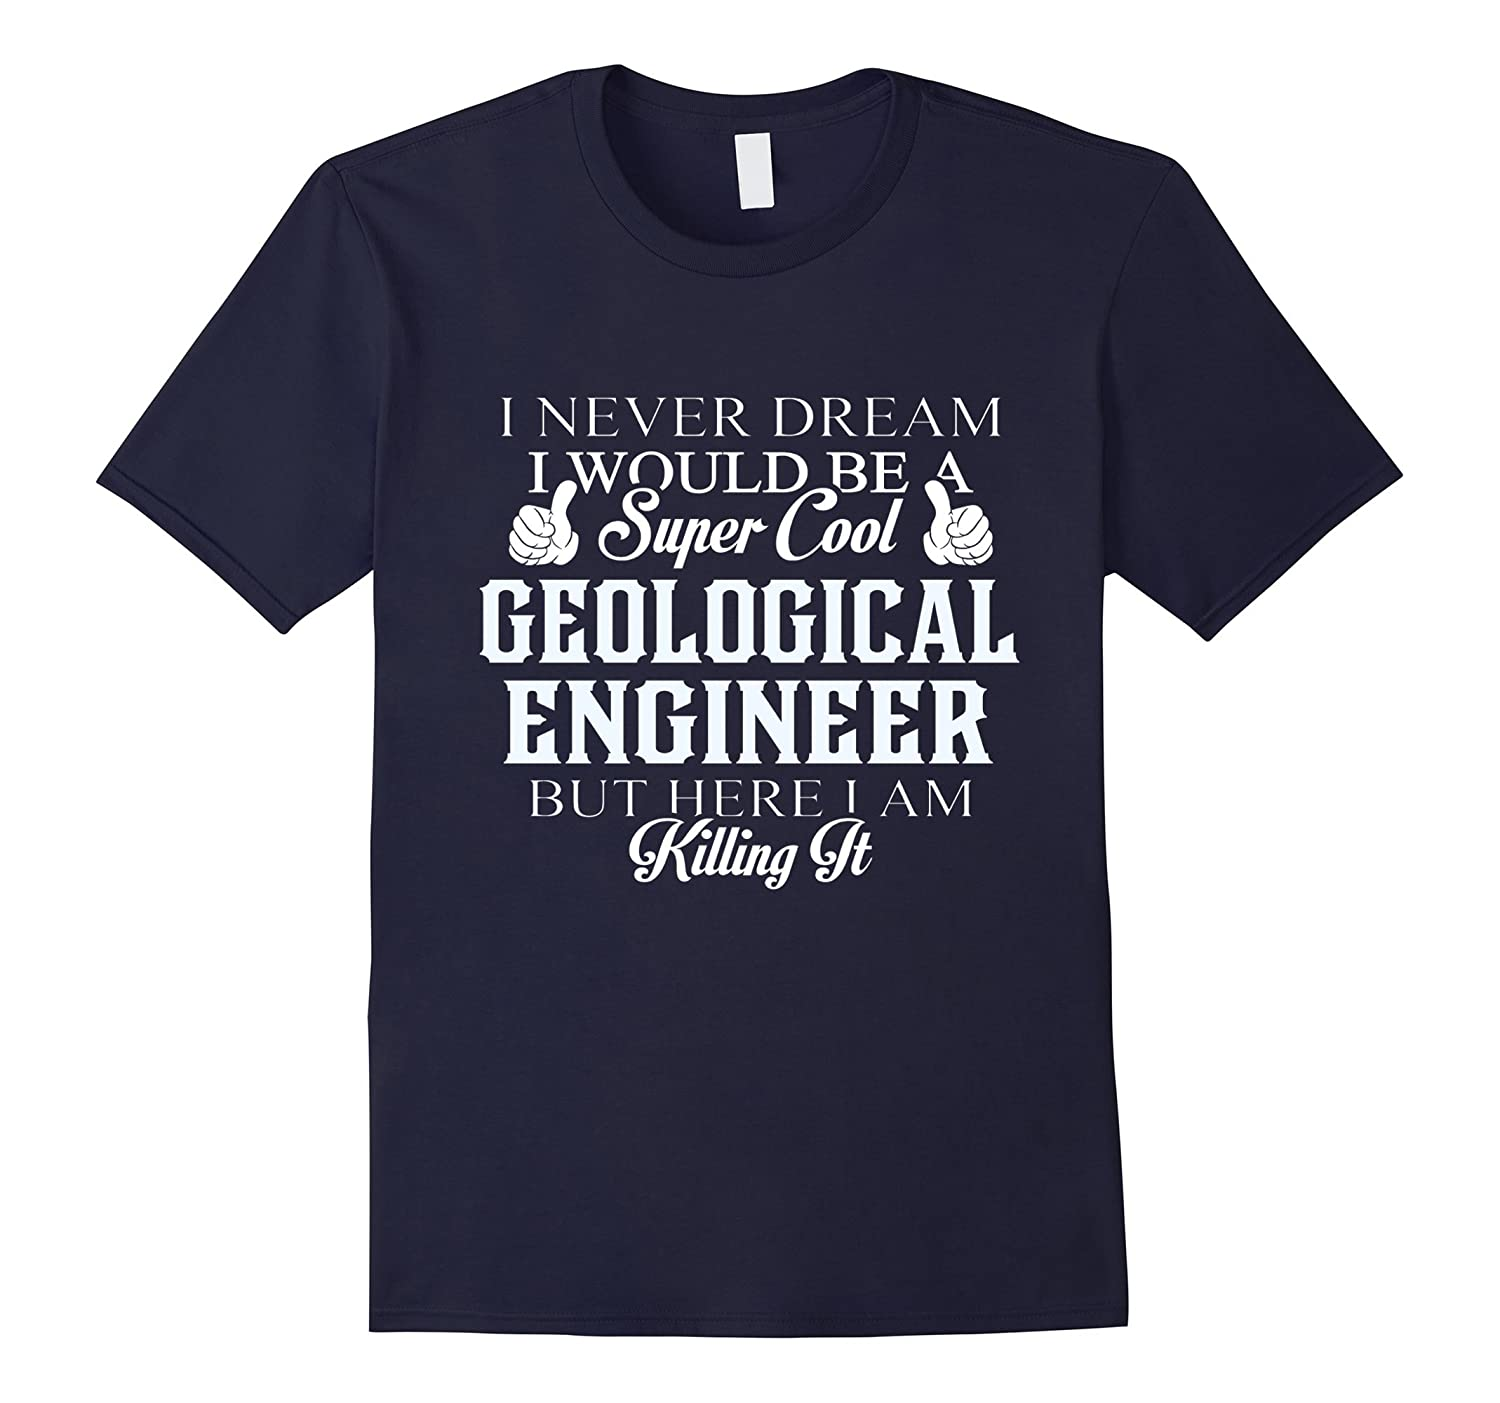 Dreamed would be super cool Geological engineer killing it-Vaci